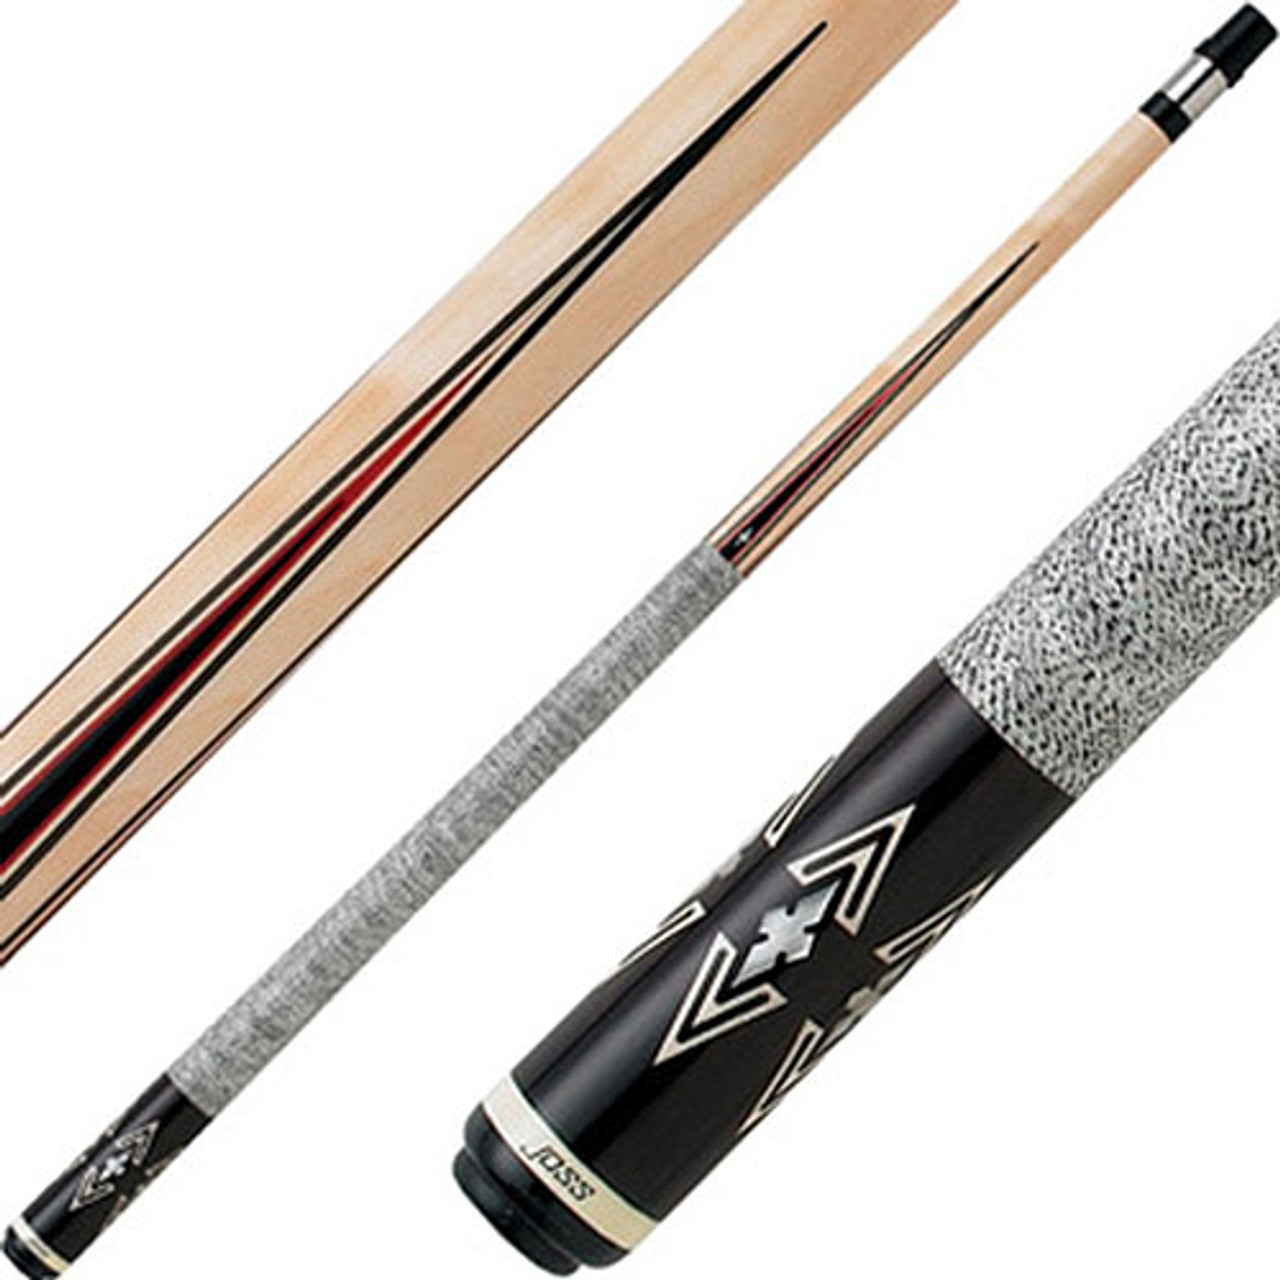 Joss Cues - The Color of Money Pool Cue - Ozone Billiards